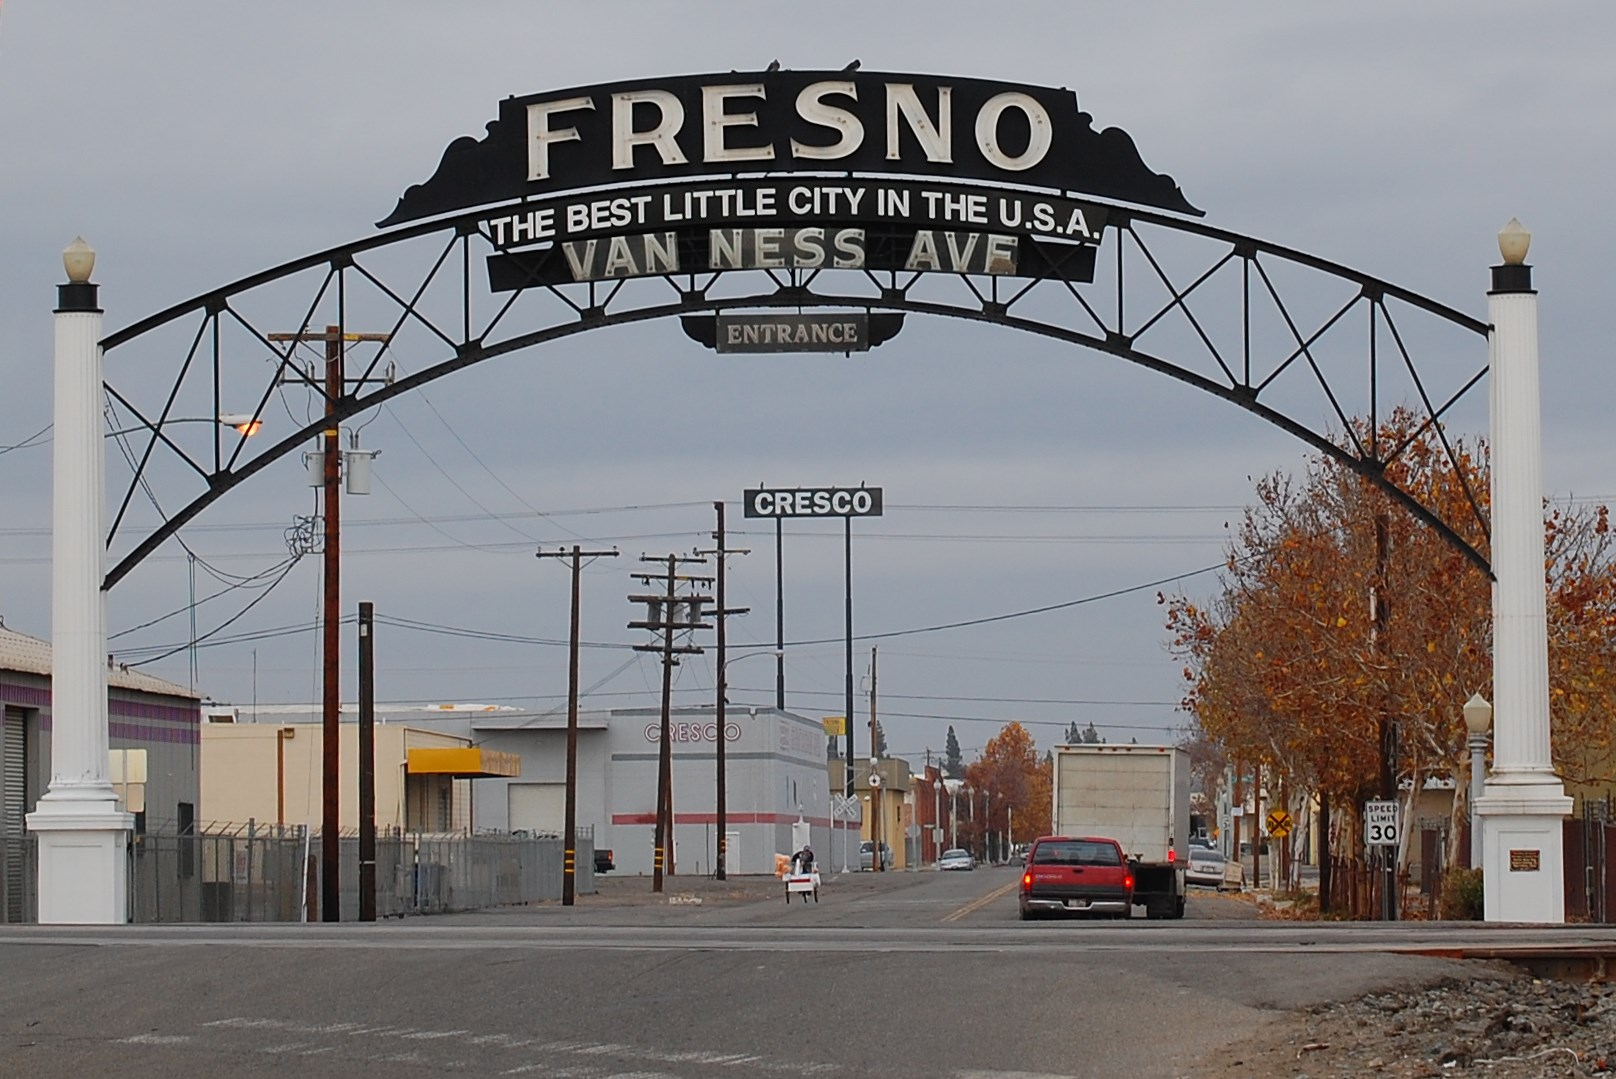 The City of Fresno